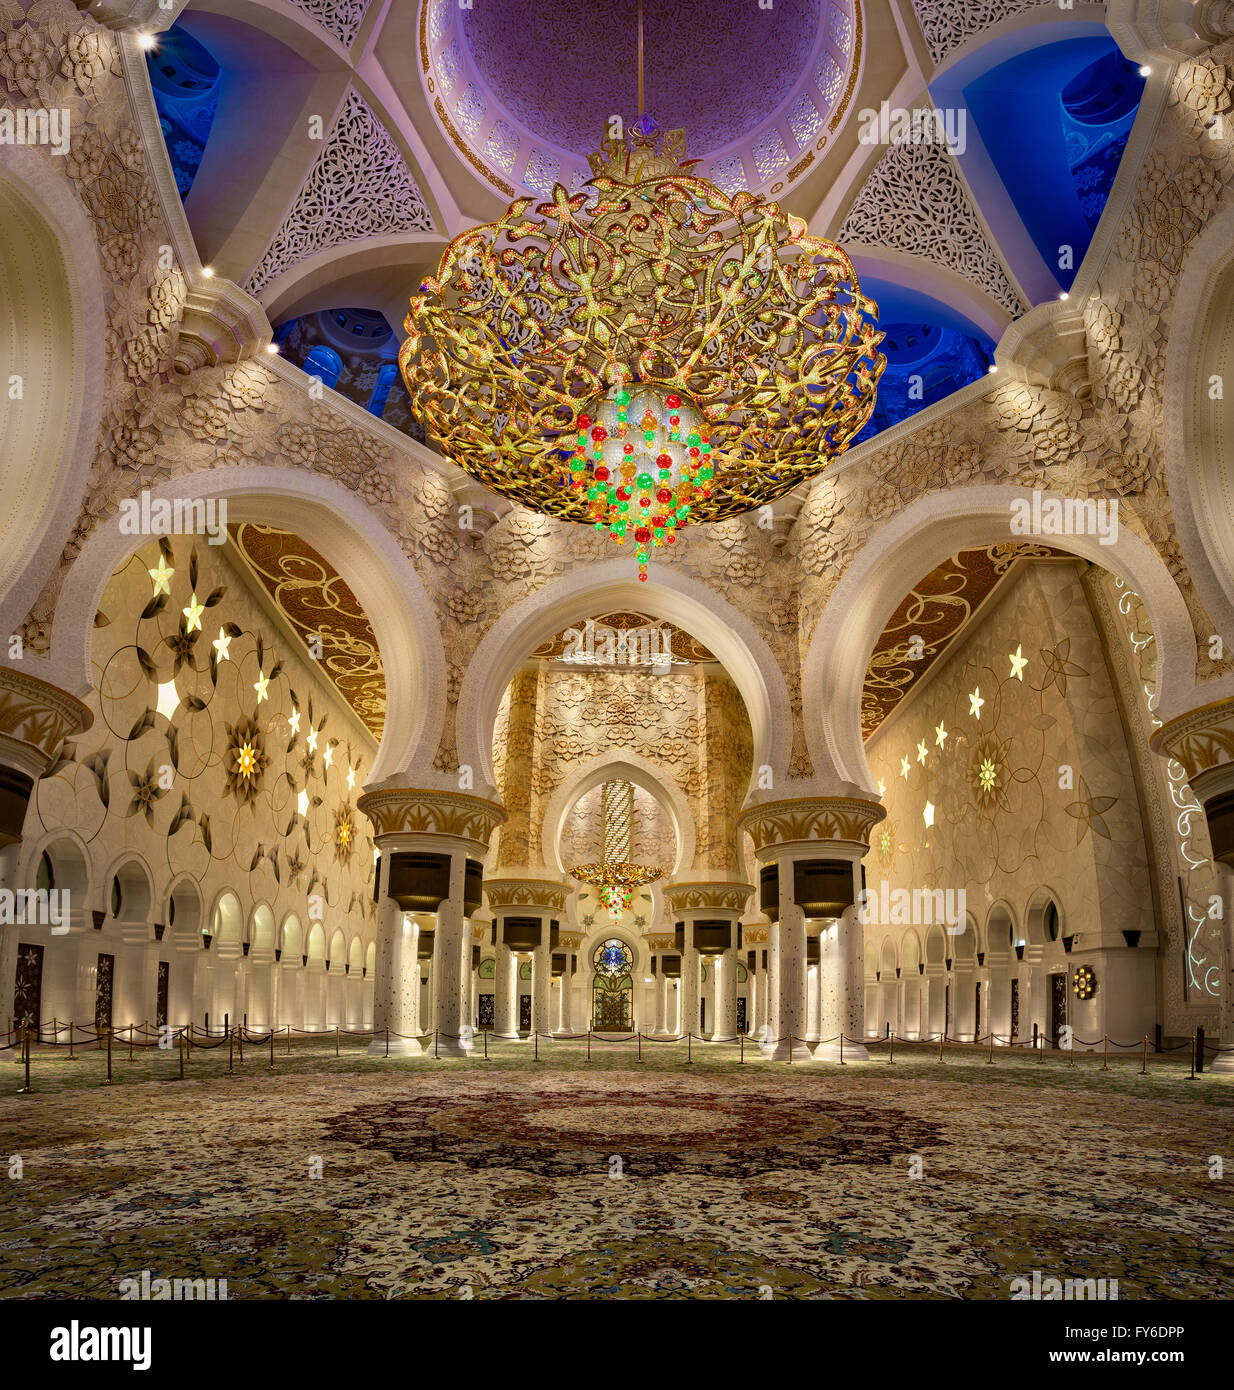 Sheikh Zayed Mosque the Second Largest Chandelier in the world - Stock Image